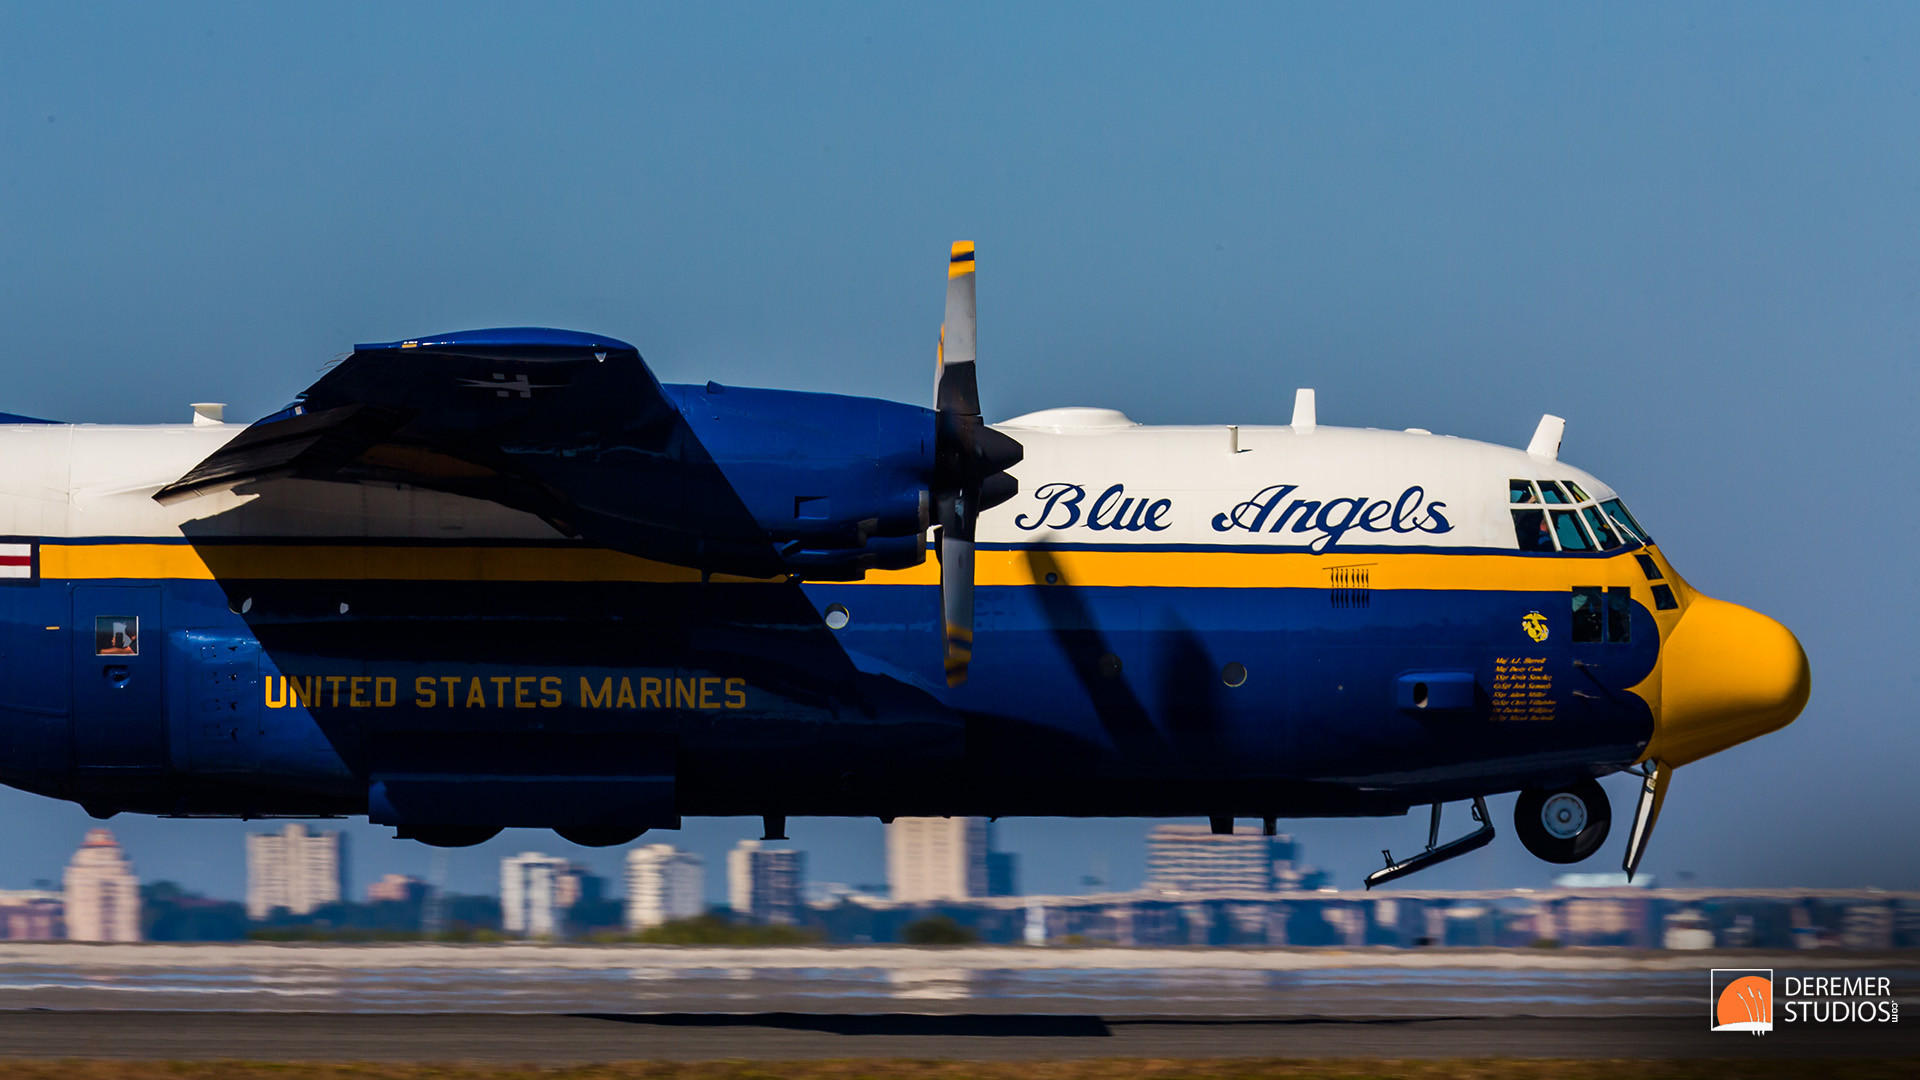 How to View a Blue Angels Airshow photo